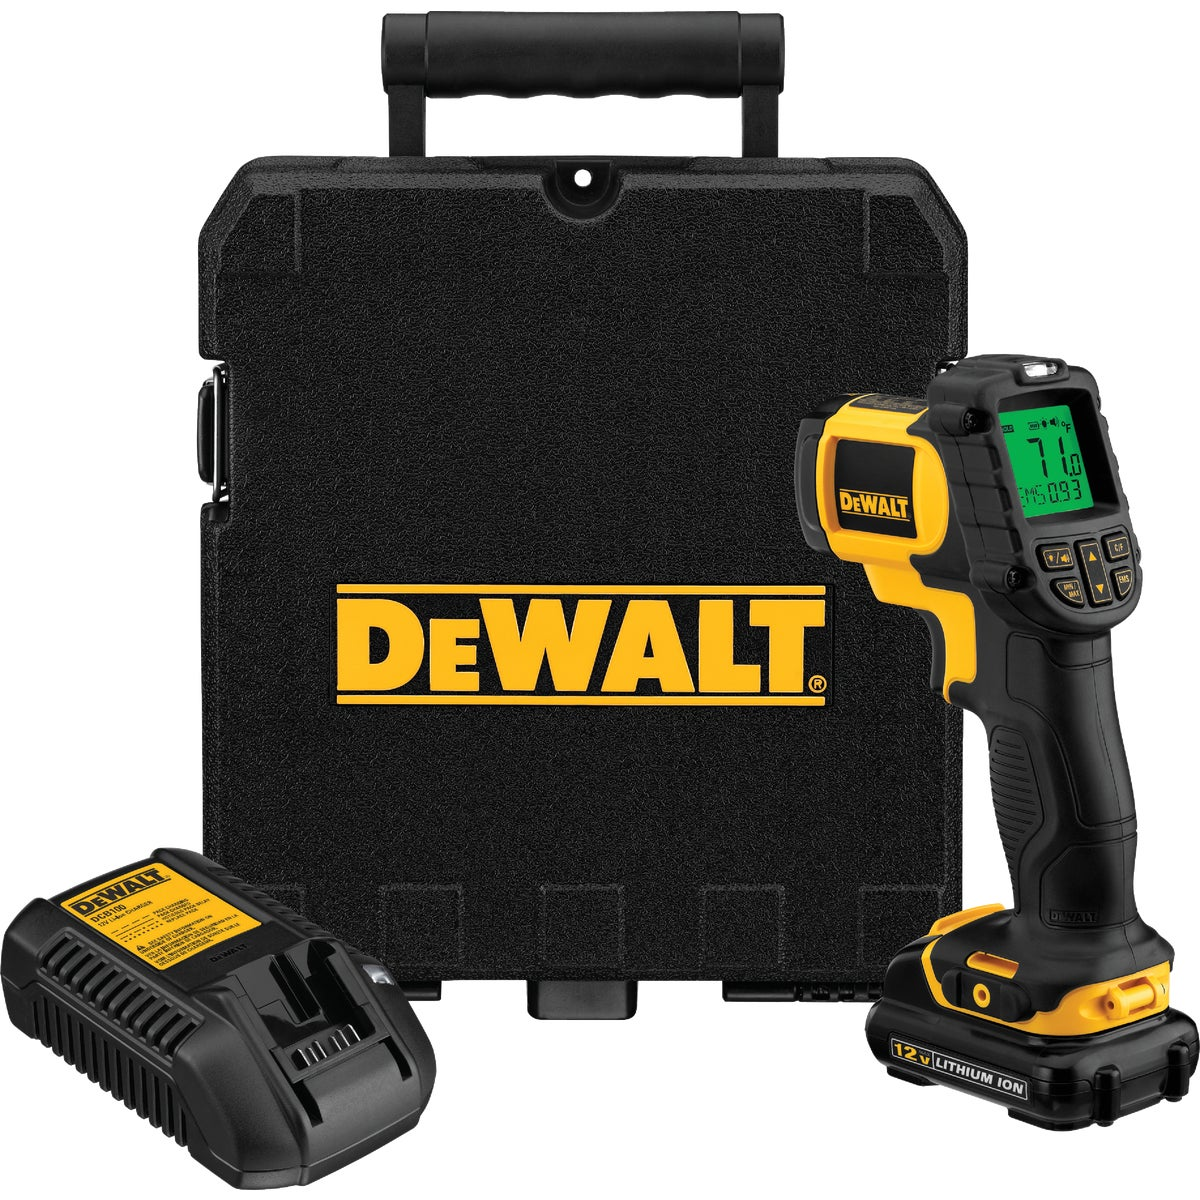 12V IR THERMOMETER KIT - DCT414S1 by DeWalt